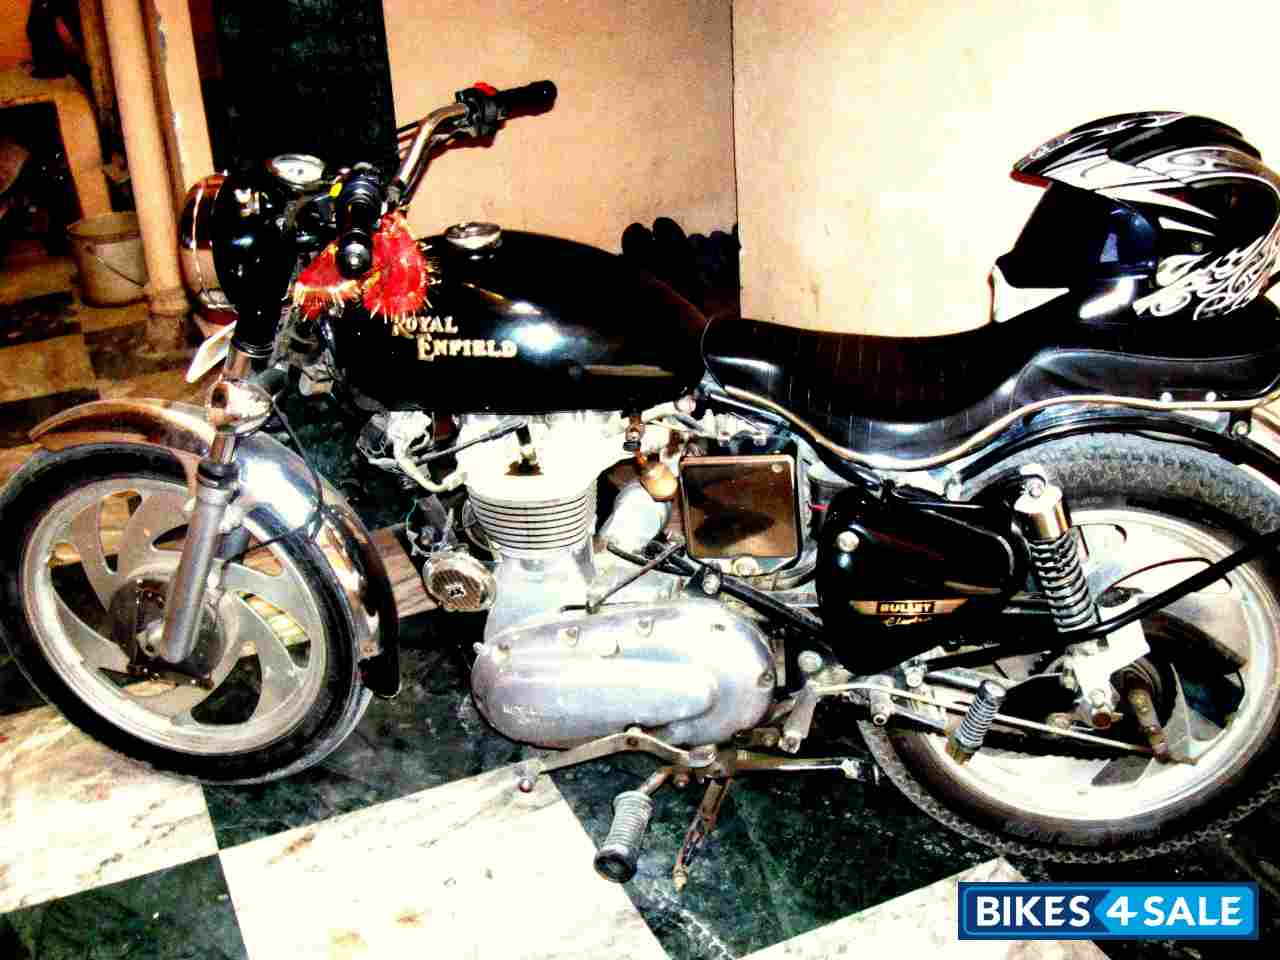 Electric Bikes For Sale >> Used 2006 model Royal Enfield Bullet Electra 5S for sale in New Delhi. ID 51577. Deep Pearl ...